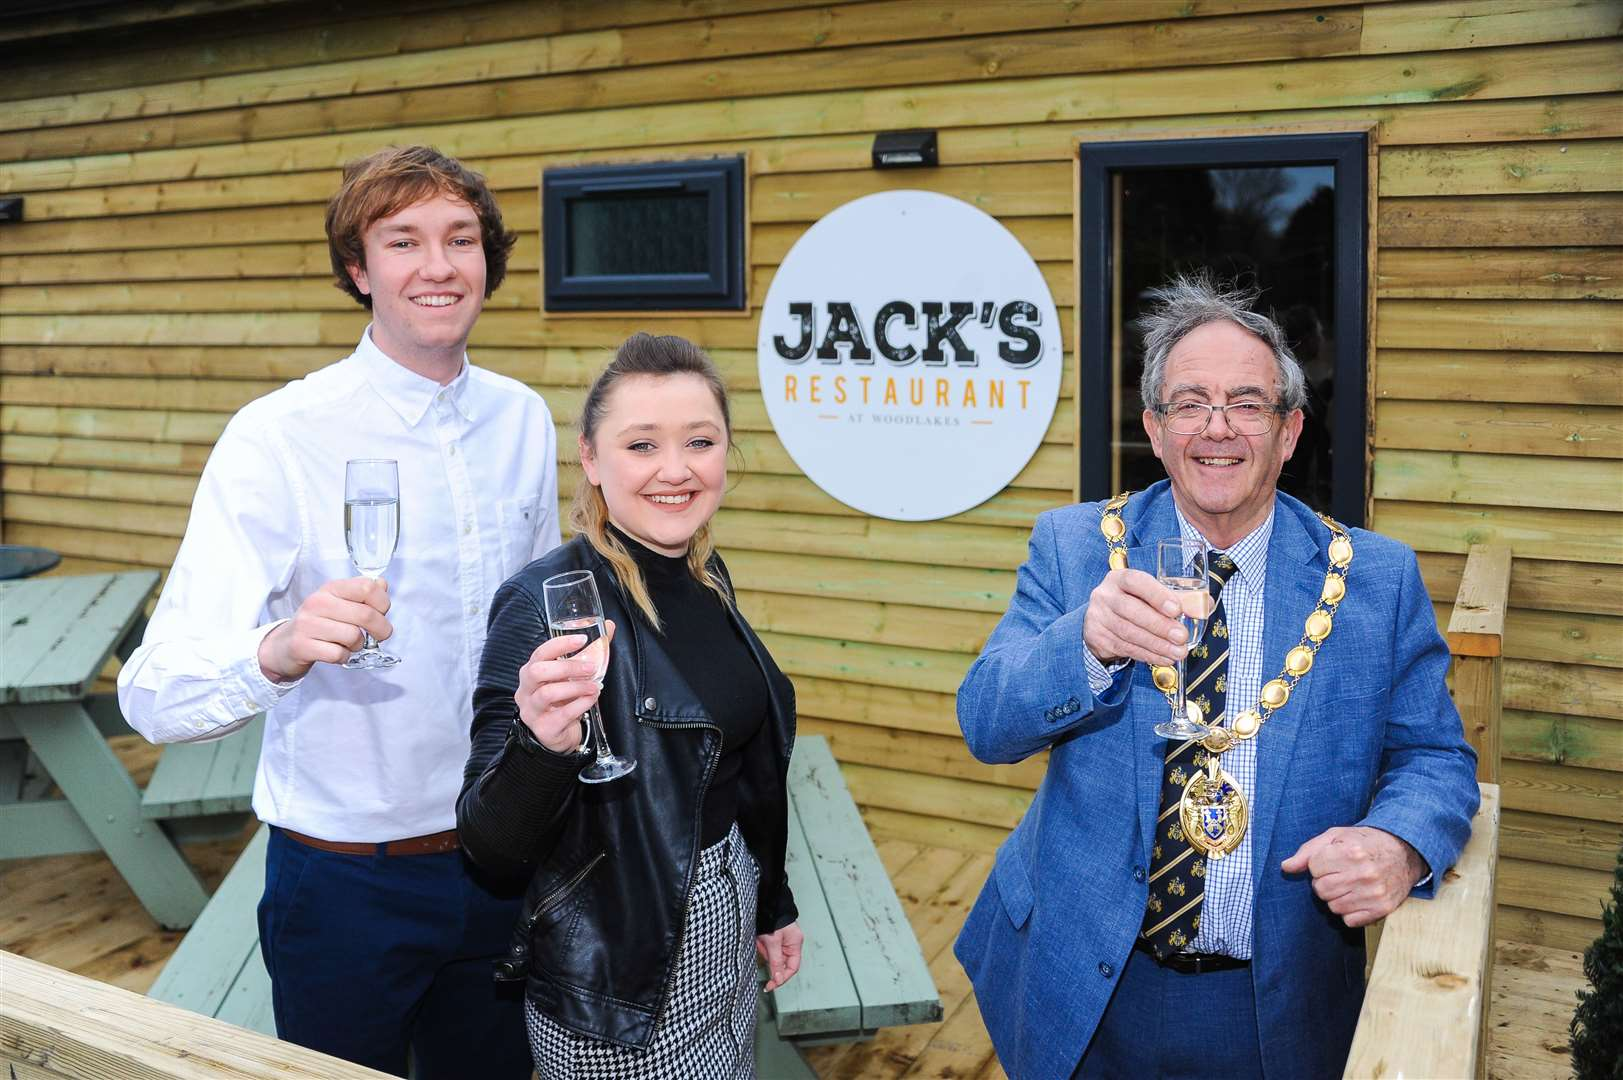 The official opening of Jack's Restaurant in Stowbridge. Pictured with Borough Mayor Geoff Hipperson are Jack Langford and Chelsea Marsh.. (30860216)